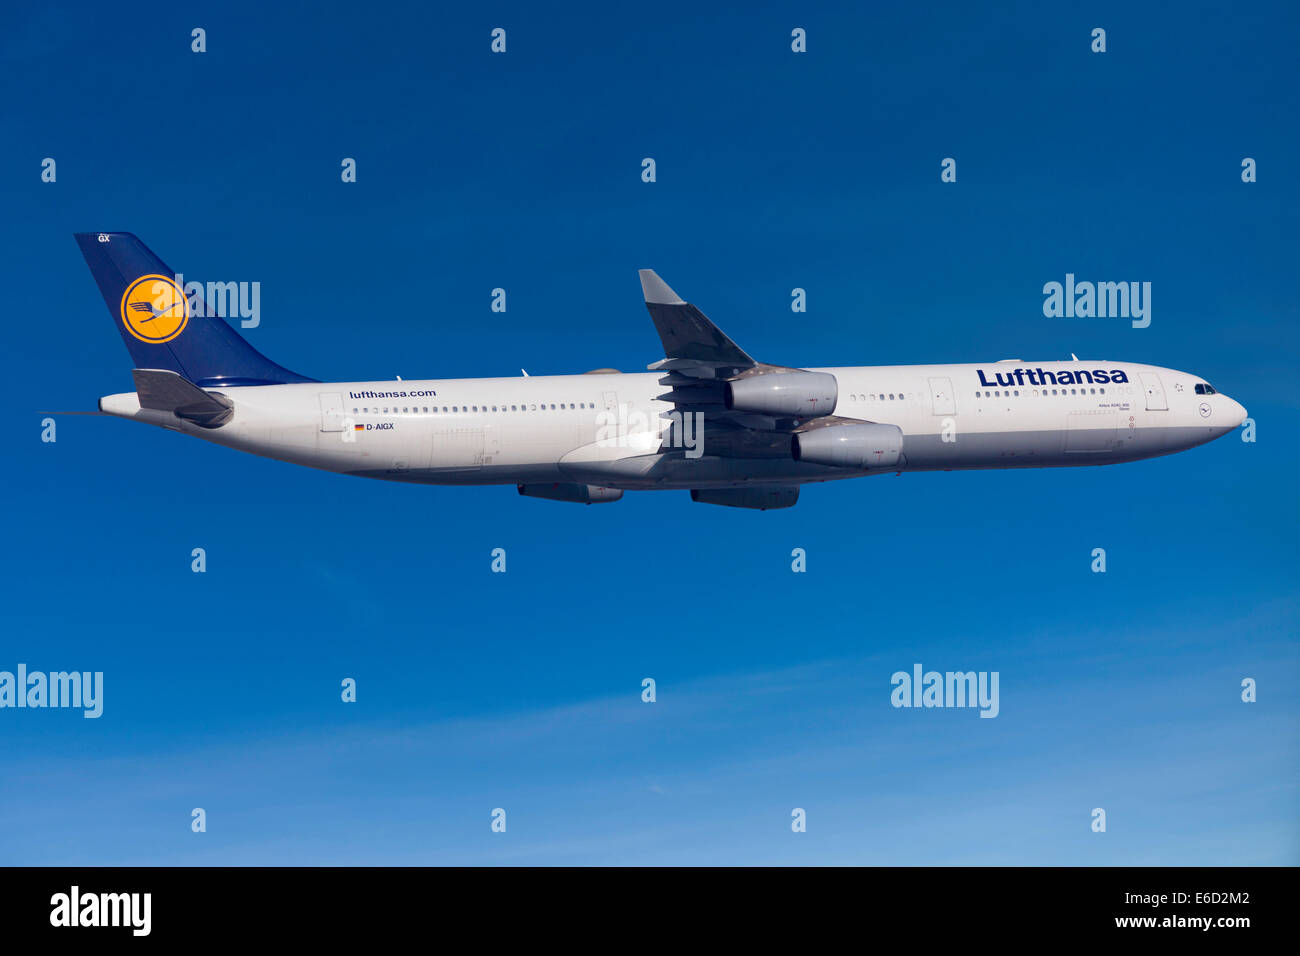 Lufthansa Airbus A330-343 in flight - Stock Image